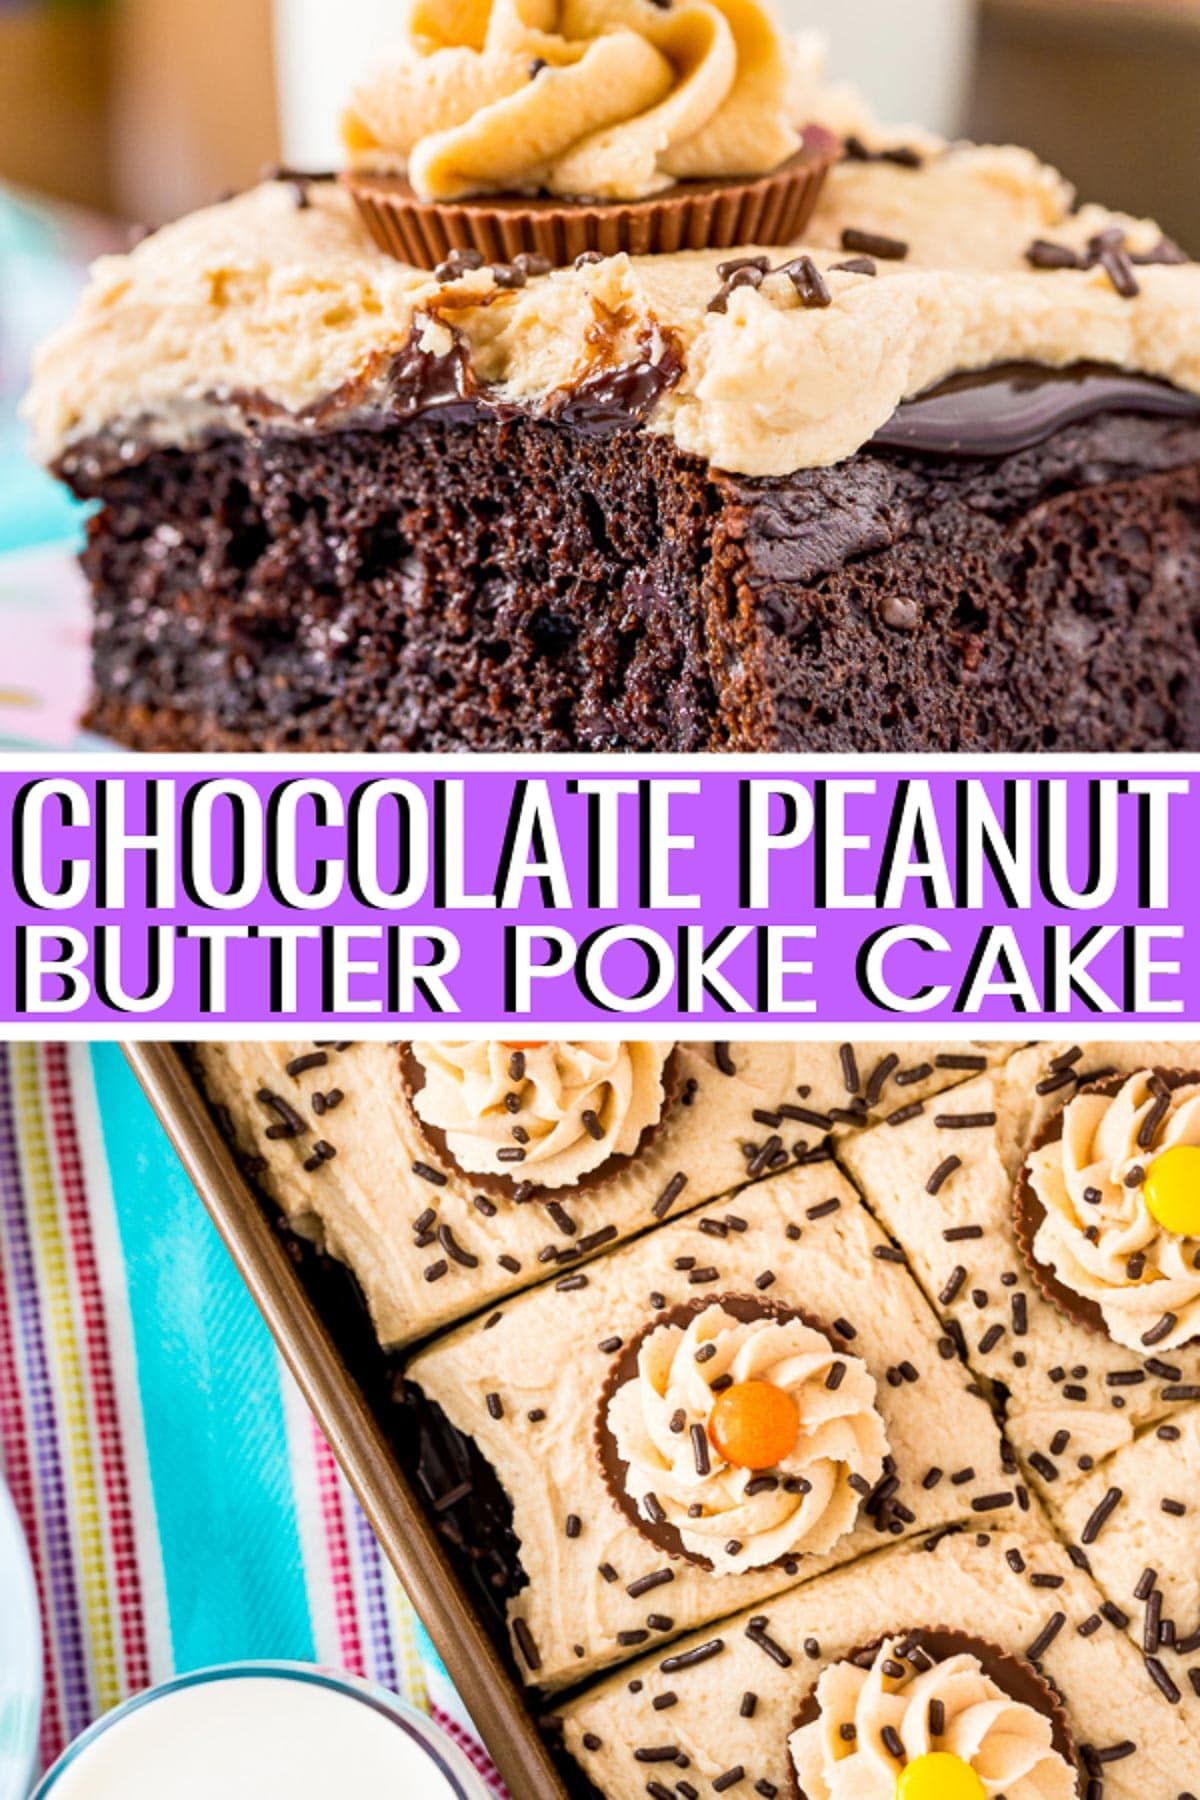 Chocolate Peanut Butter Poke Cake is an easy and decadent sheet cake recipe with rich chocolate and salty peanut butter flavor! via @sugarandsoulco